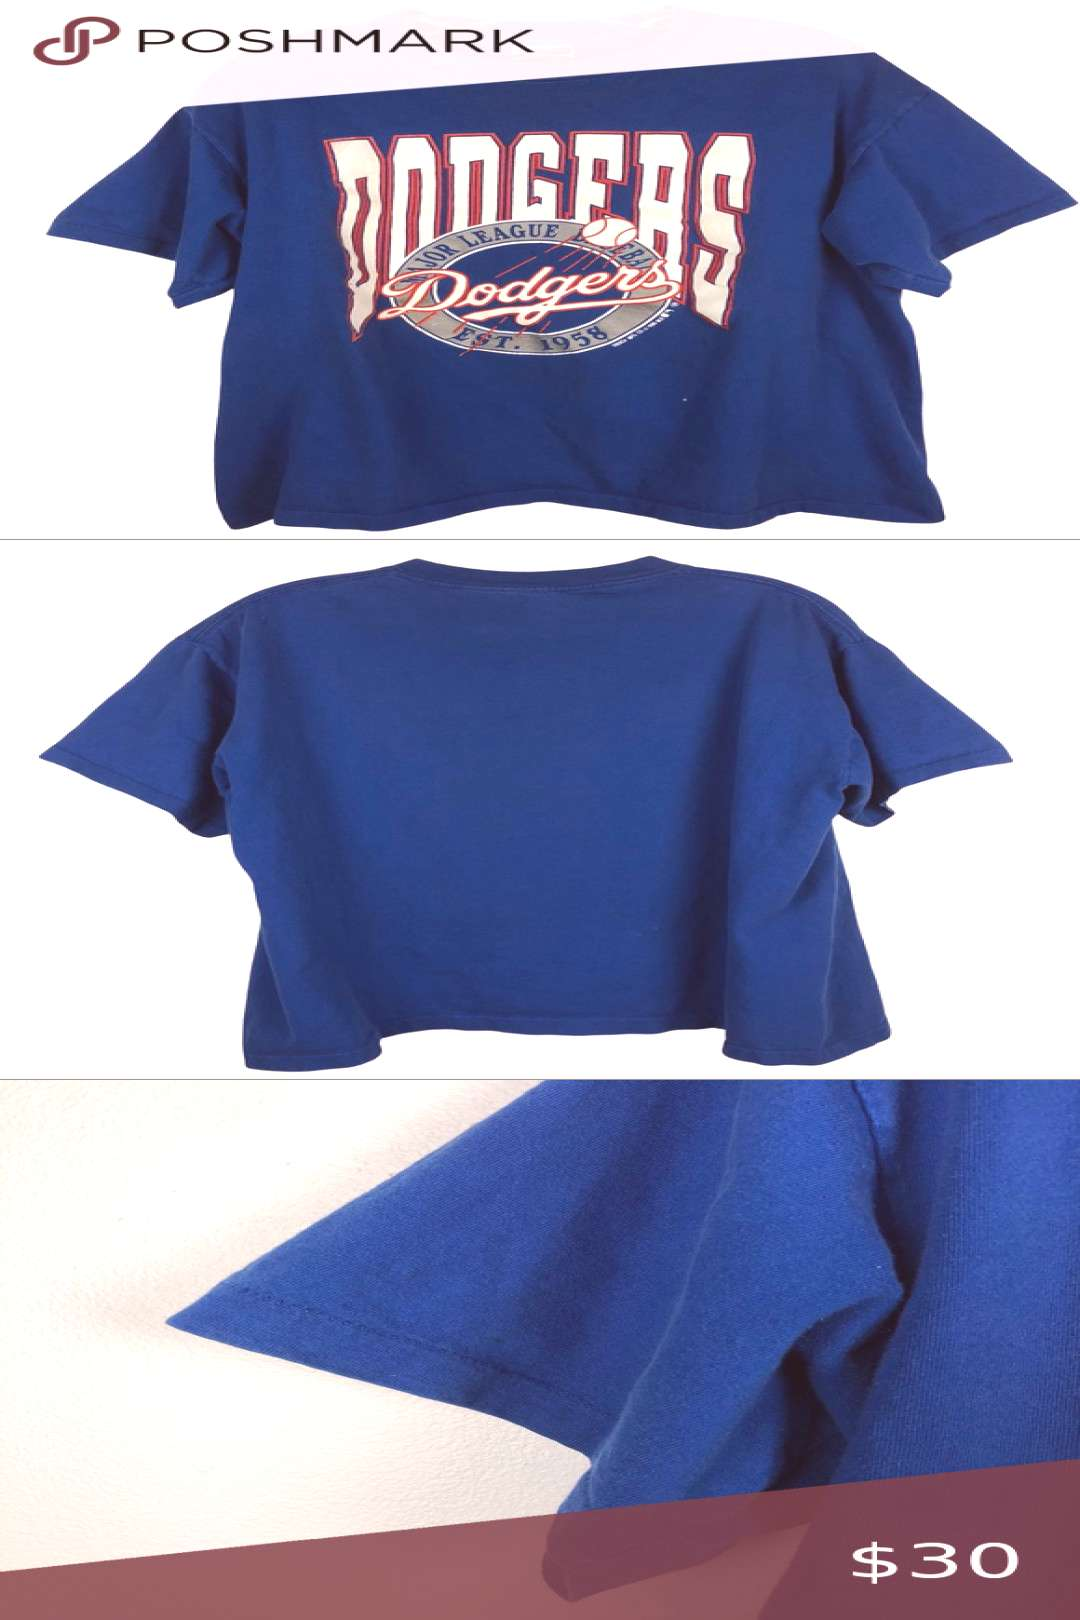 VTG LA Dodgers Graphic Tee XL Single Stitch Style: Blue LA Dodgers baseball graphic tee. Vintage 19